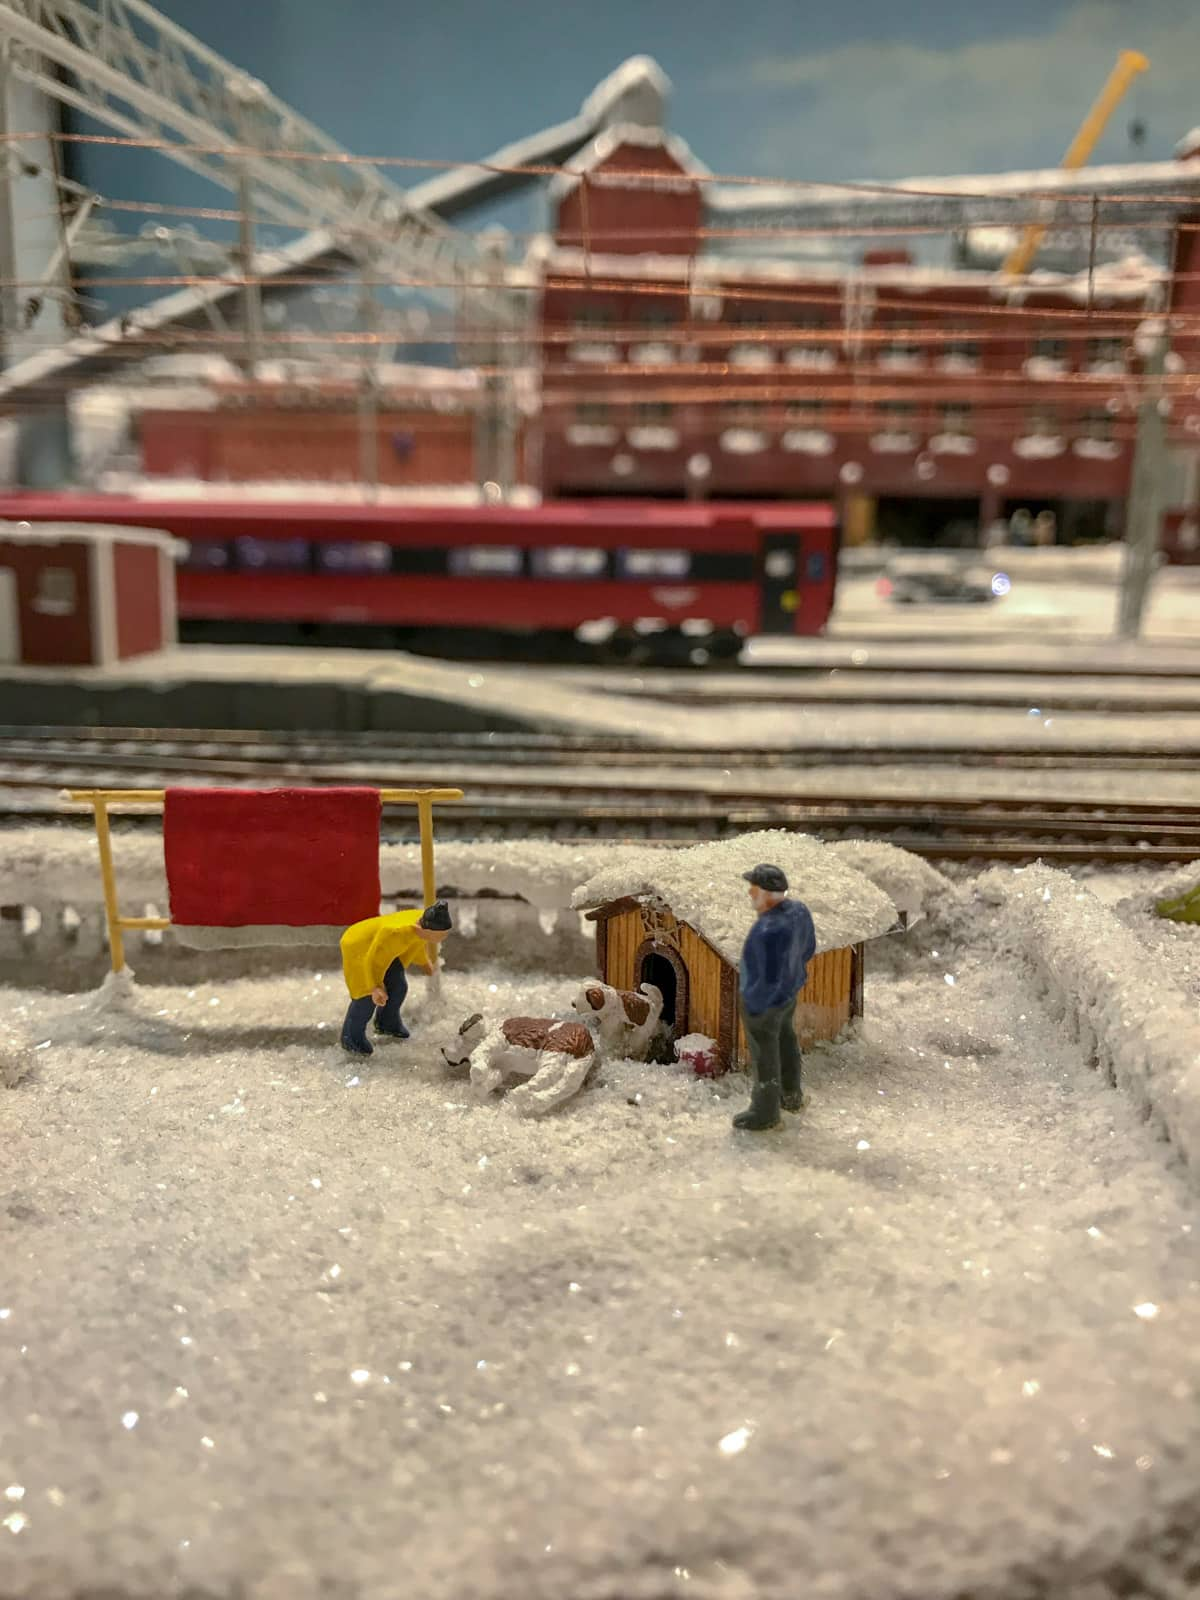 Miniature figurines in a scenario where a man is bending over looking at a dog lying in the snow